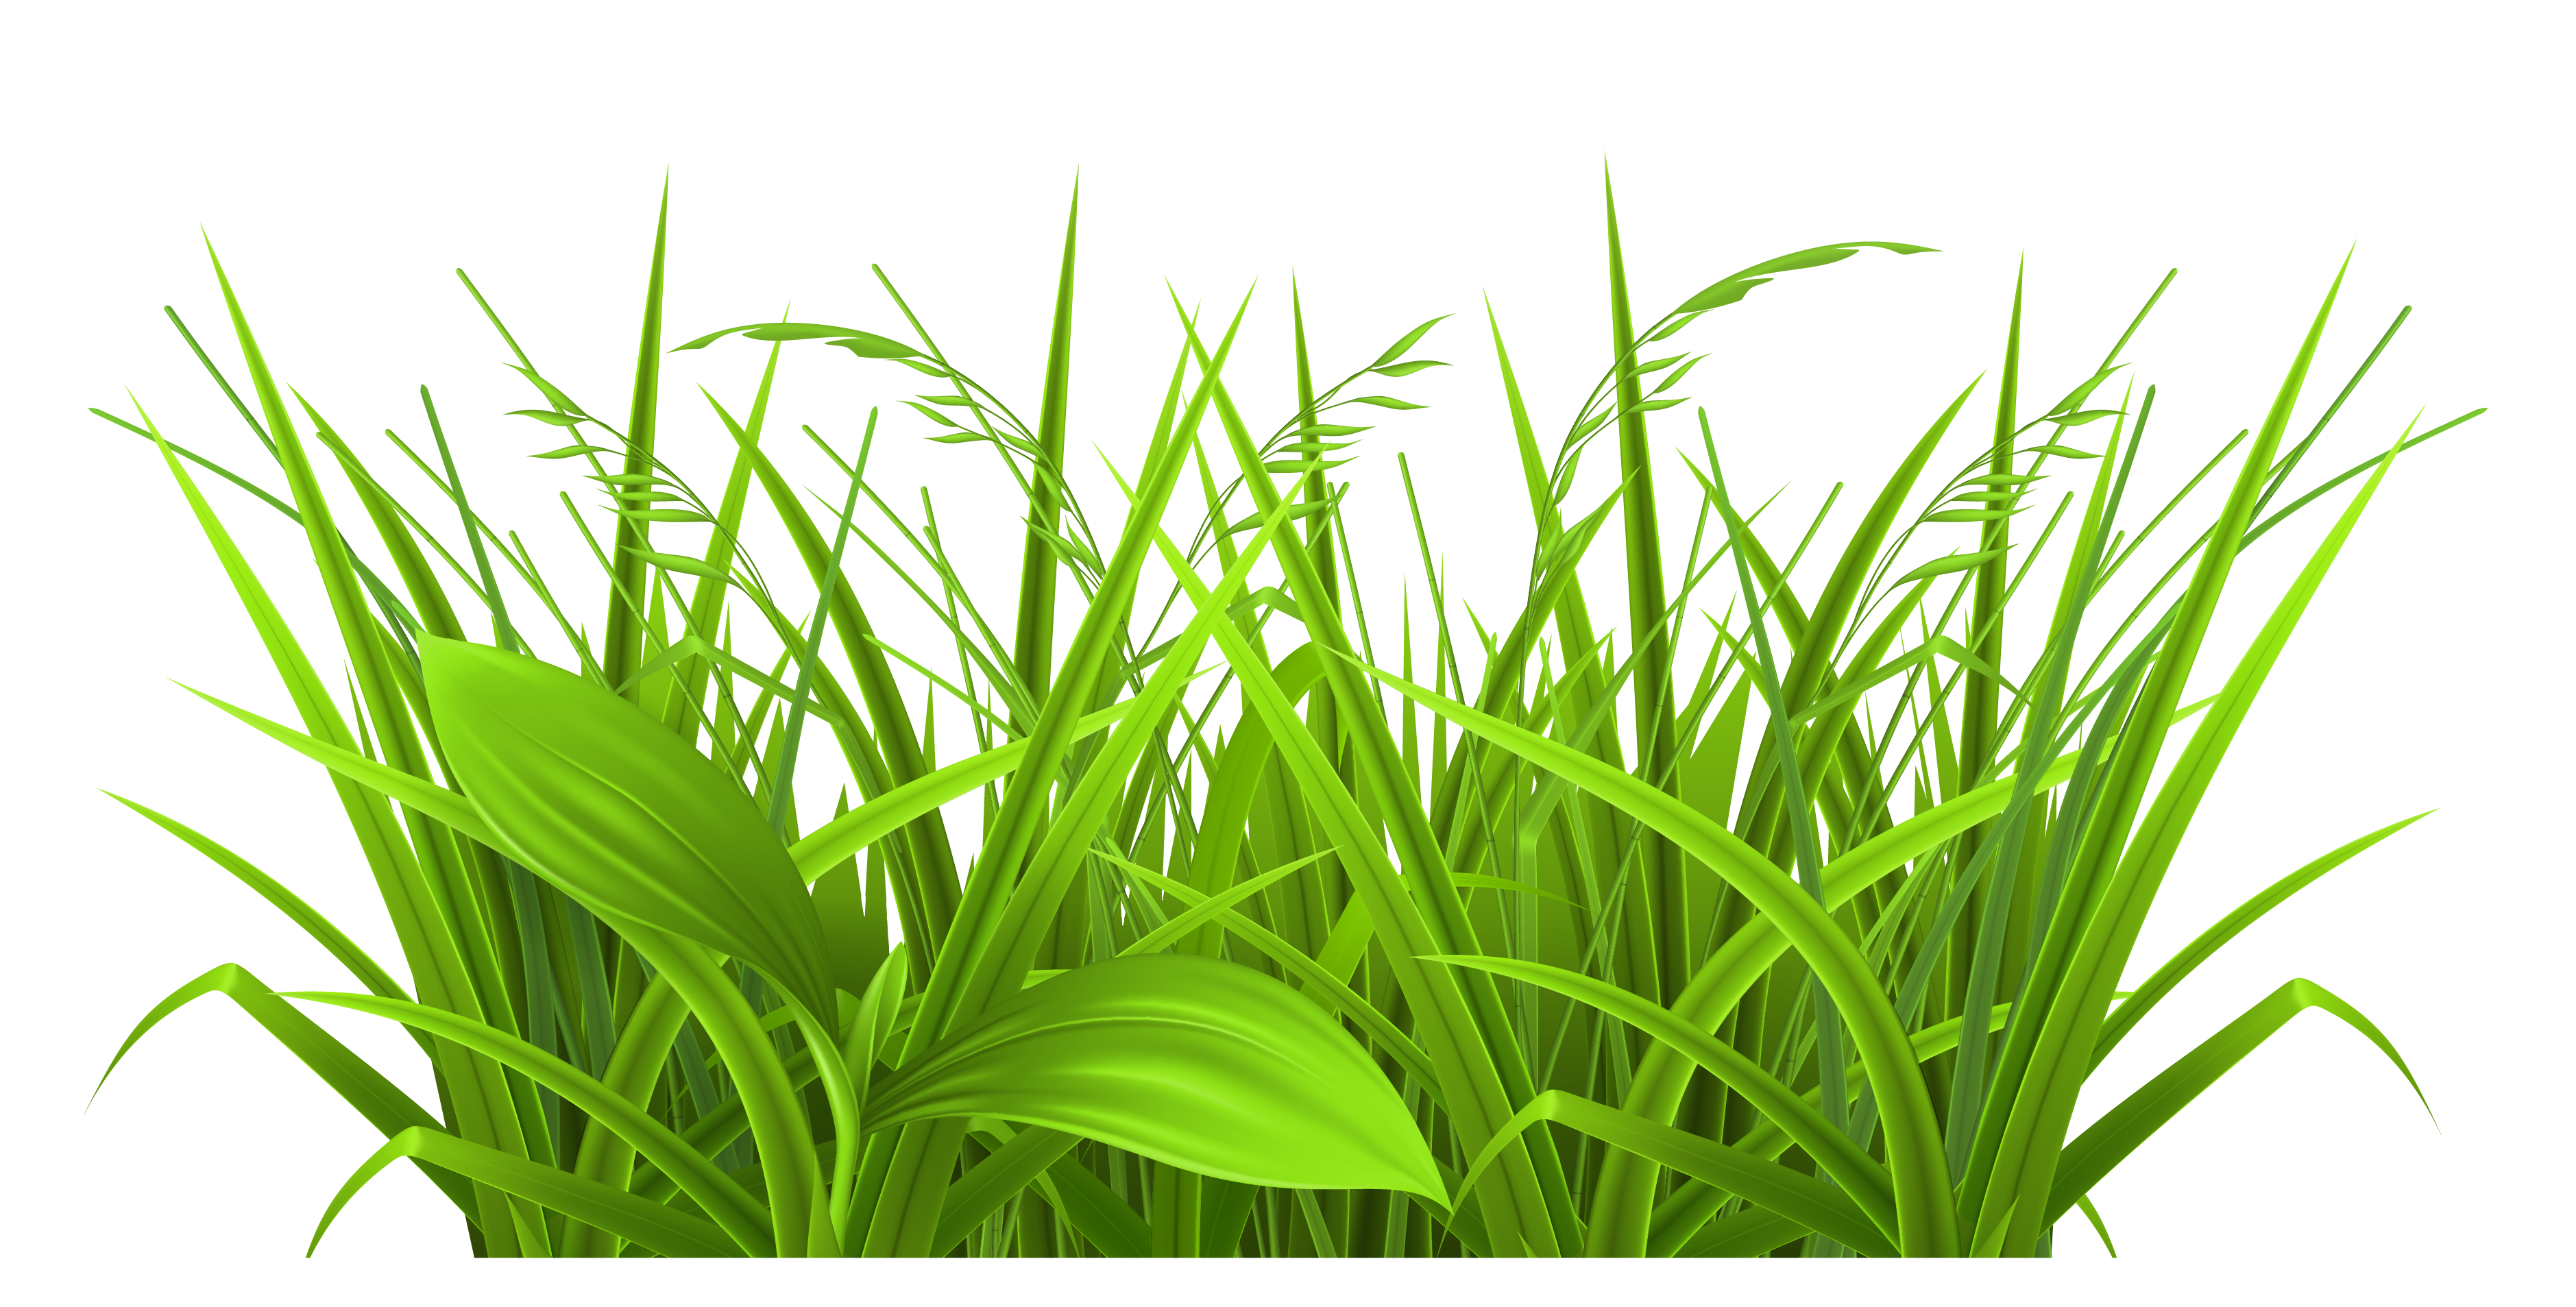 3758x1907 Decorative Grass Clipart Png Pictureu200b Gallery Yopriceville